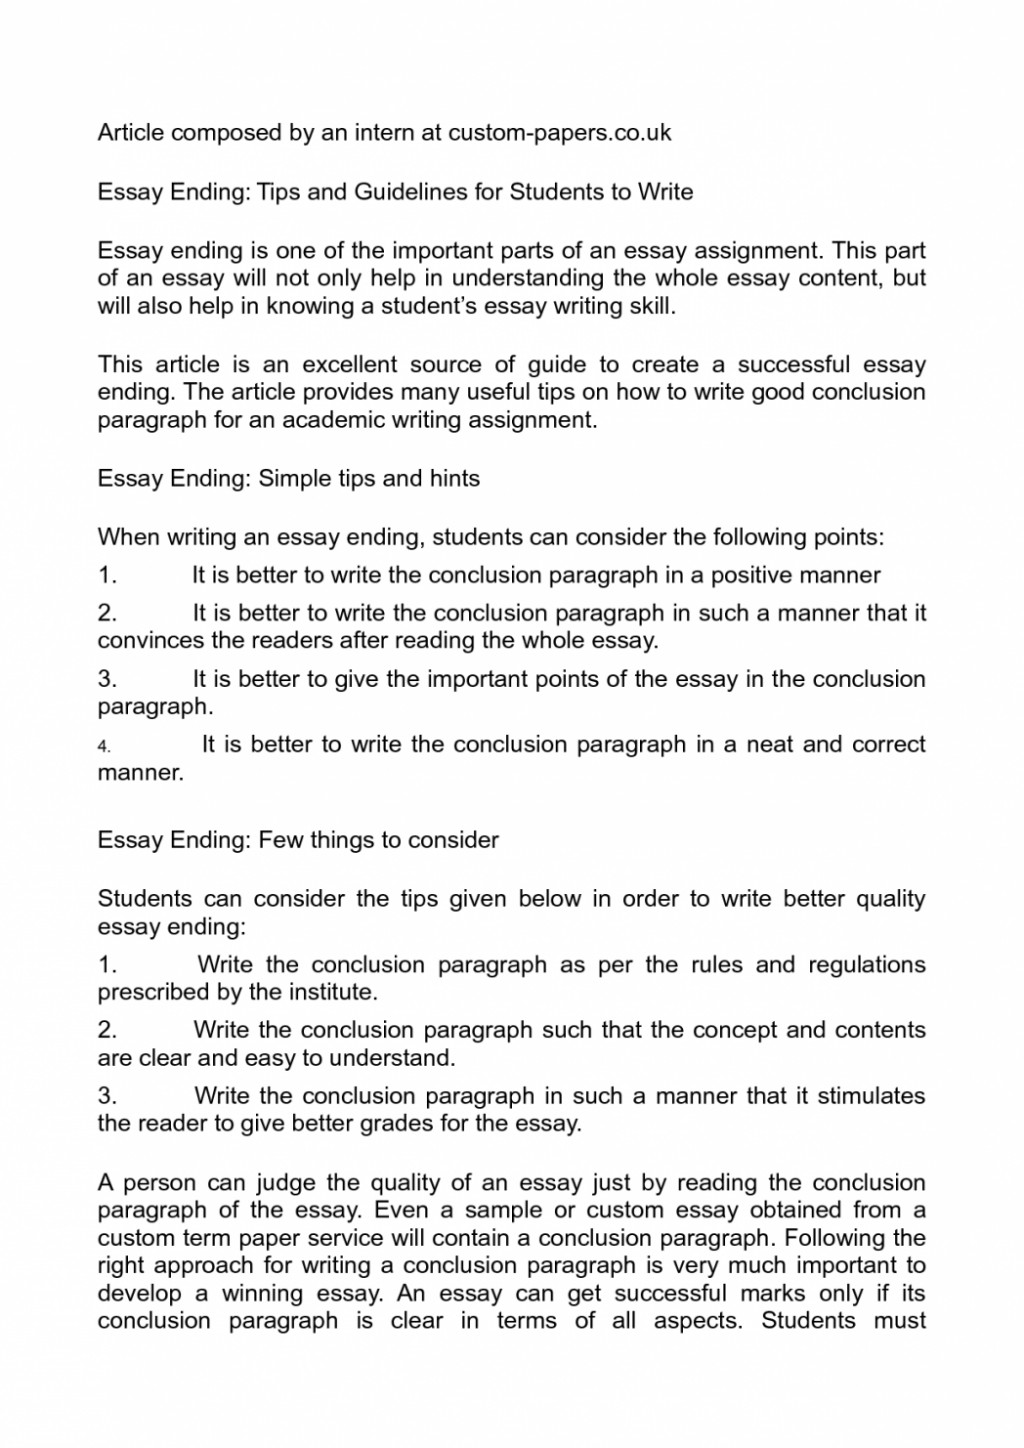 013 Good Ways To End An Essay Example Ending Is It Okay With Question Pzwnx My Wrong Outstanding Opinion Best Way Argumentative What Are Some Large